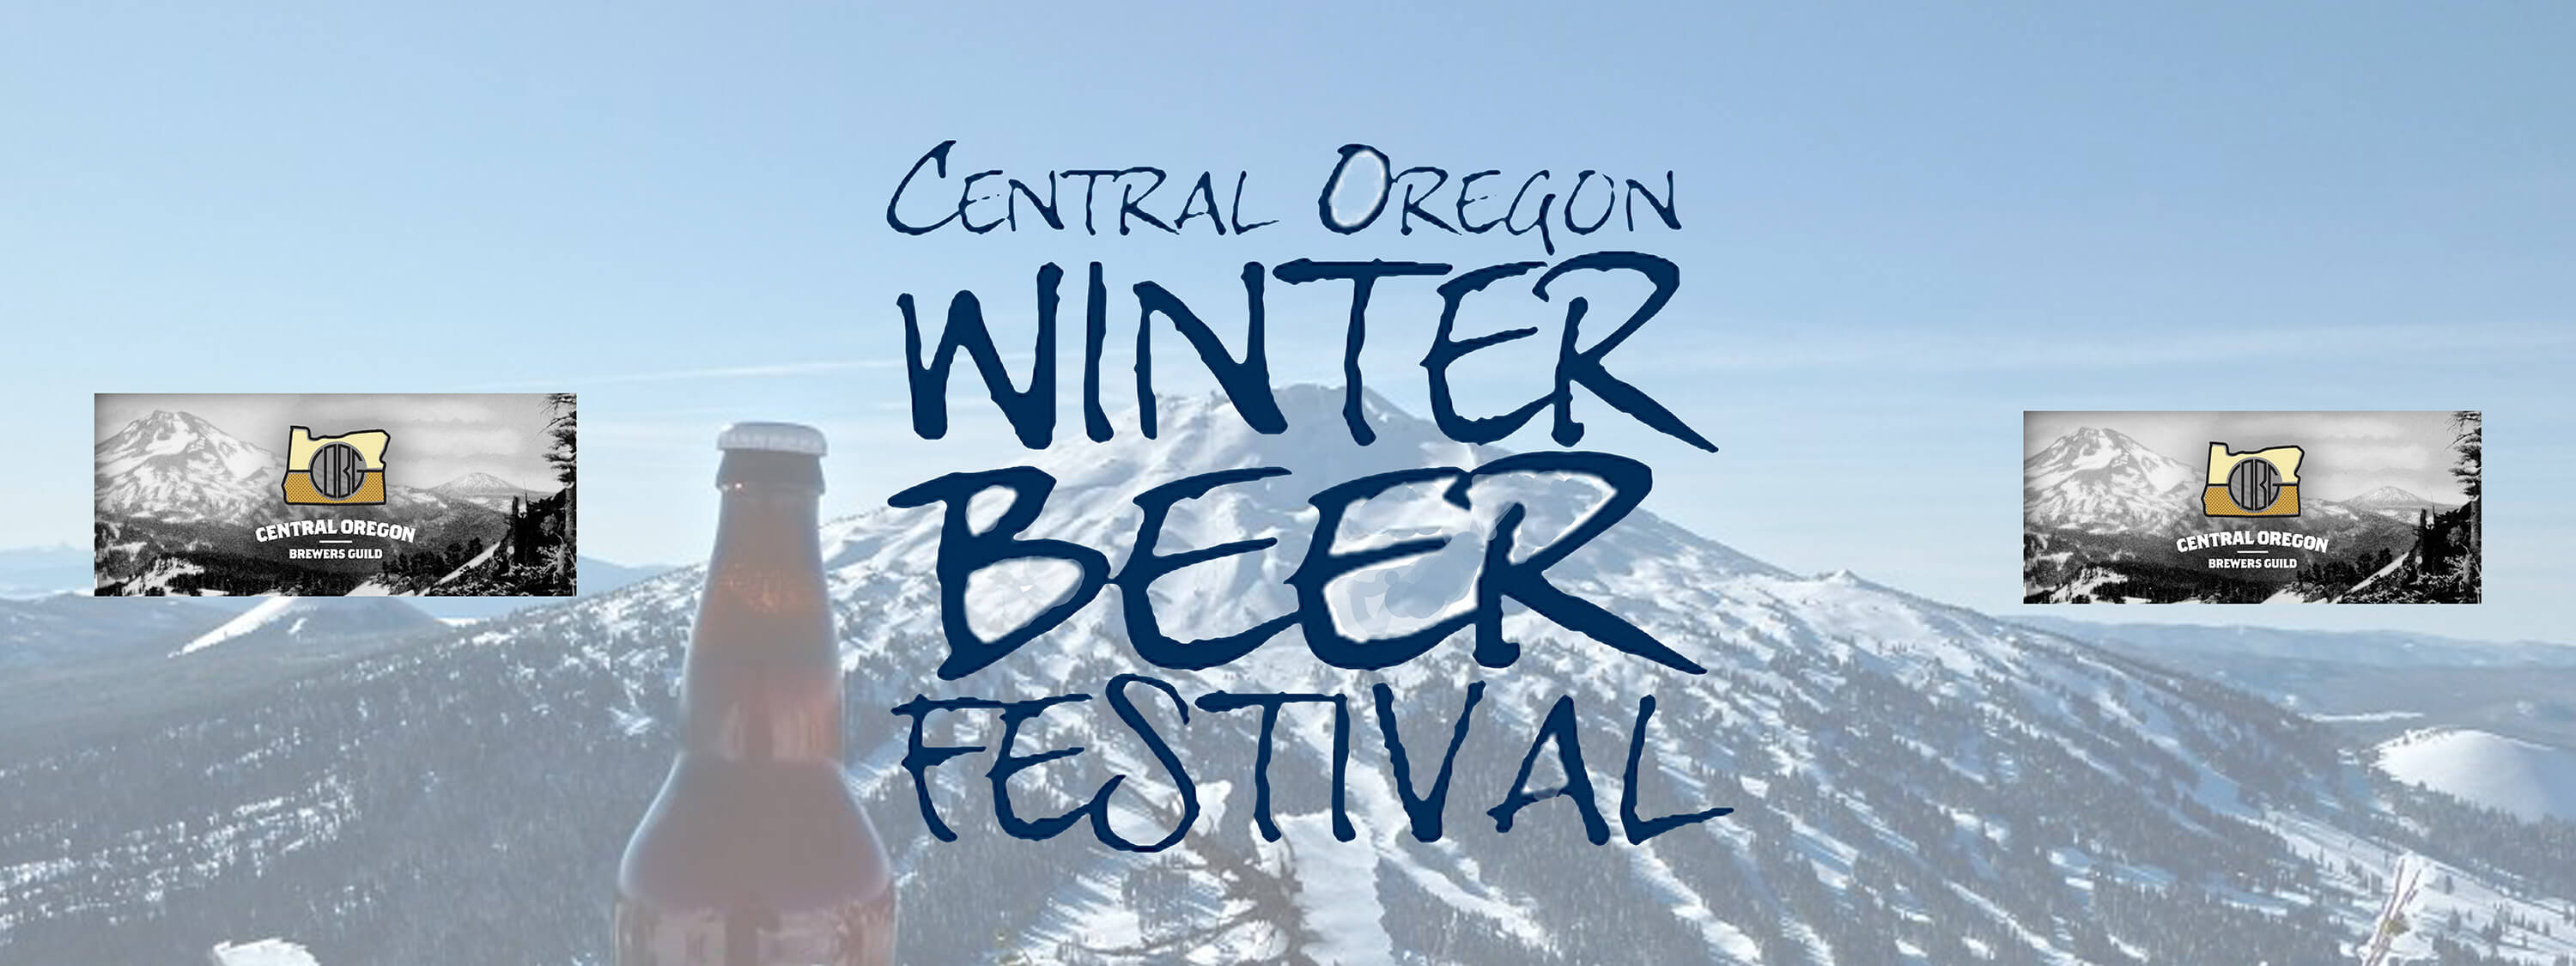 Central-Oregon-Winter-Beer-Festival-banner